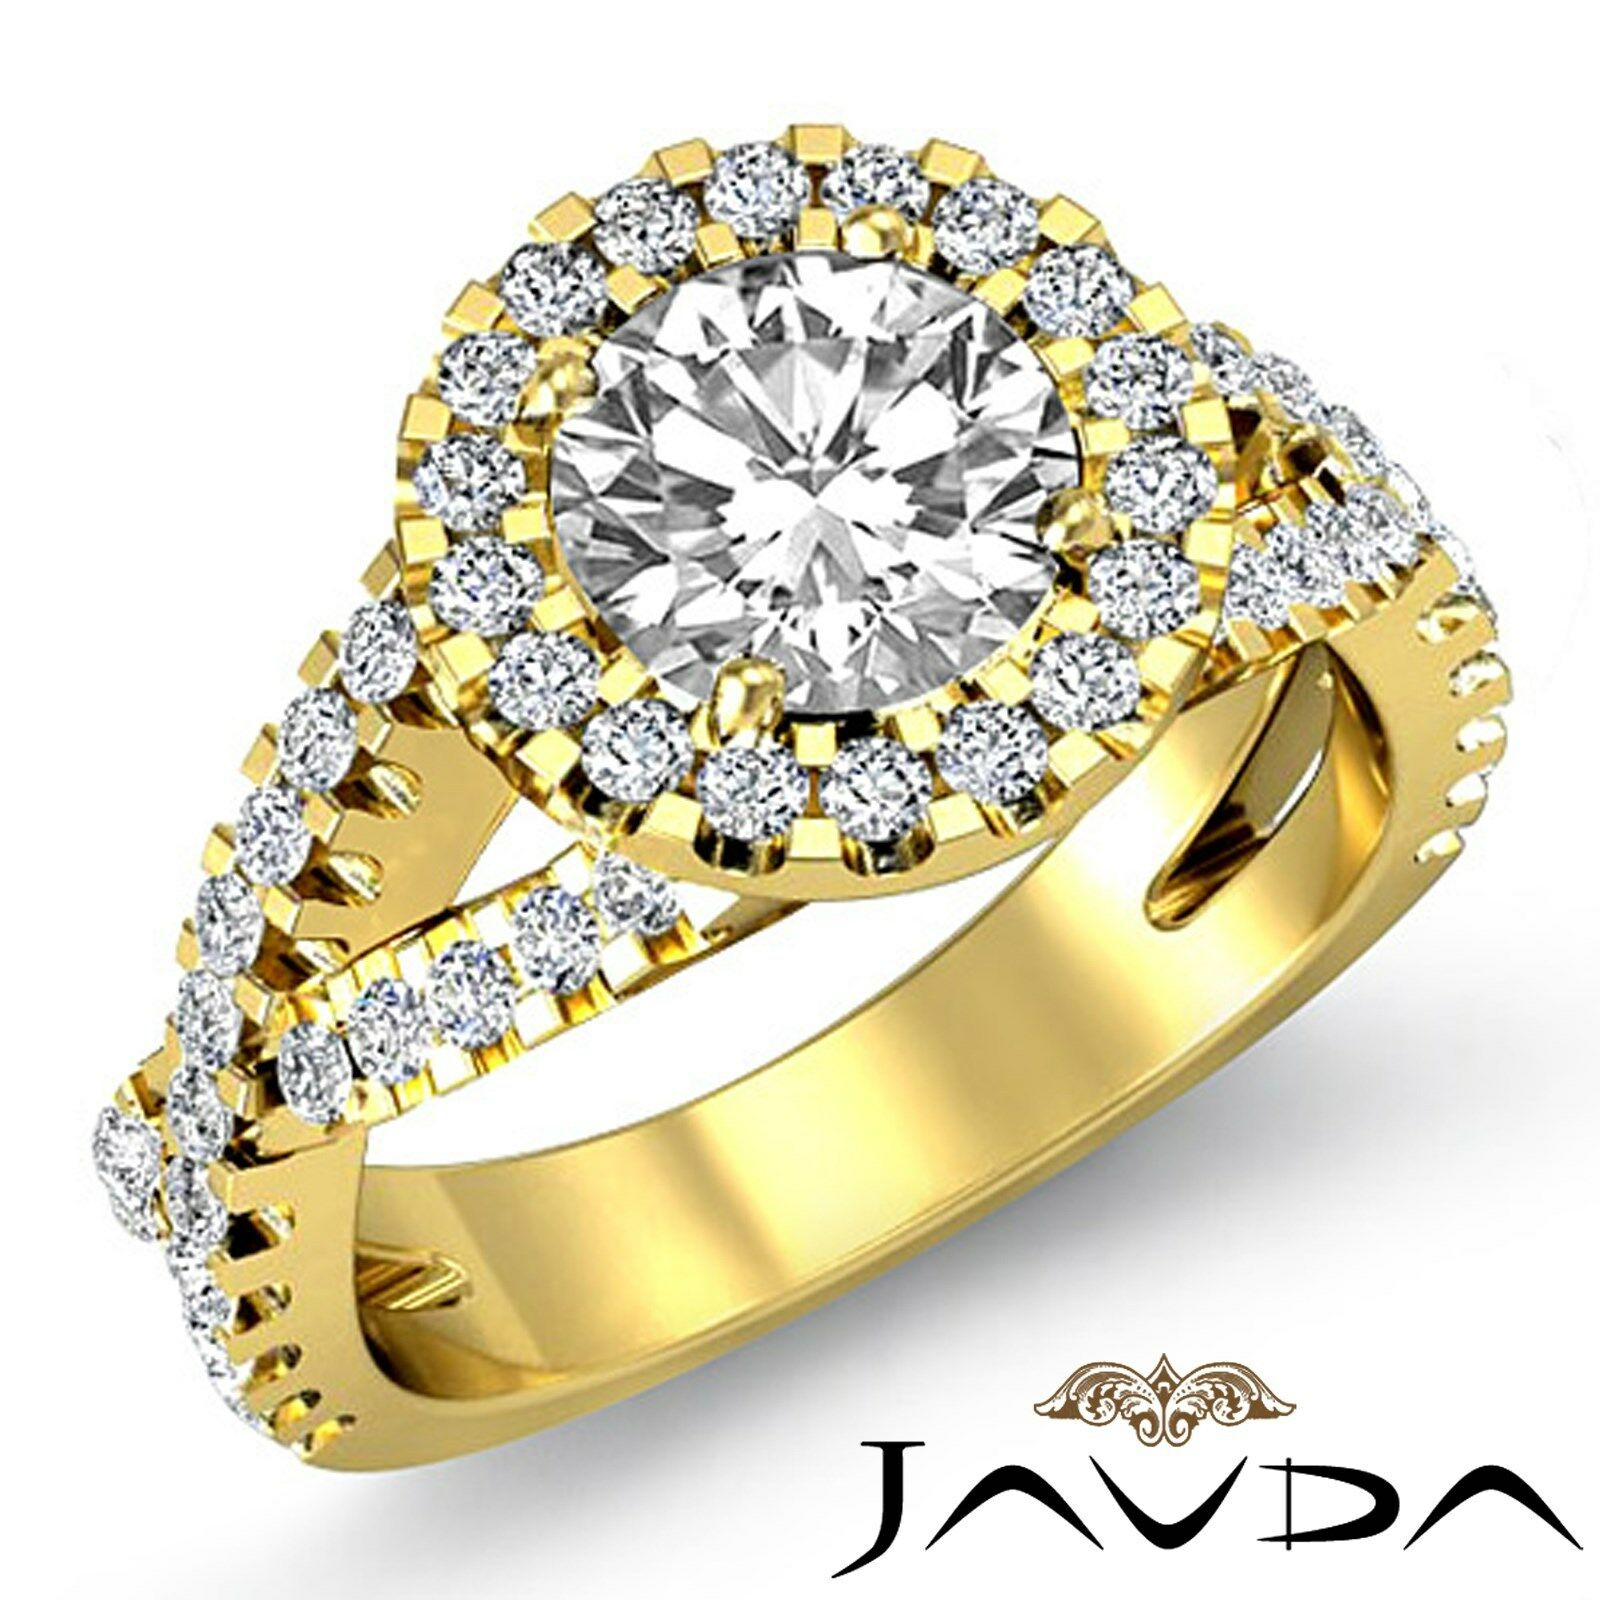 Halo Cross Shank Round Diamond Engagement Prong Set Ring GIA I Color SI1 2.4Ct